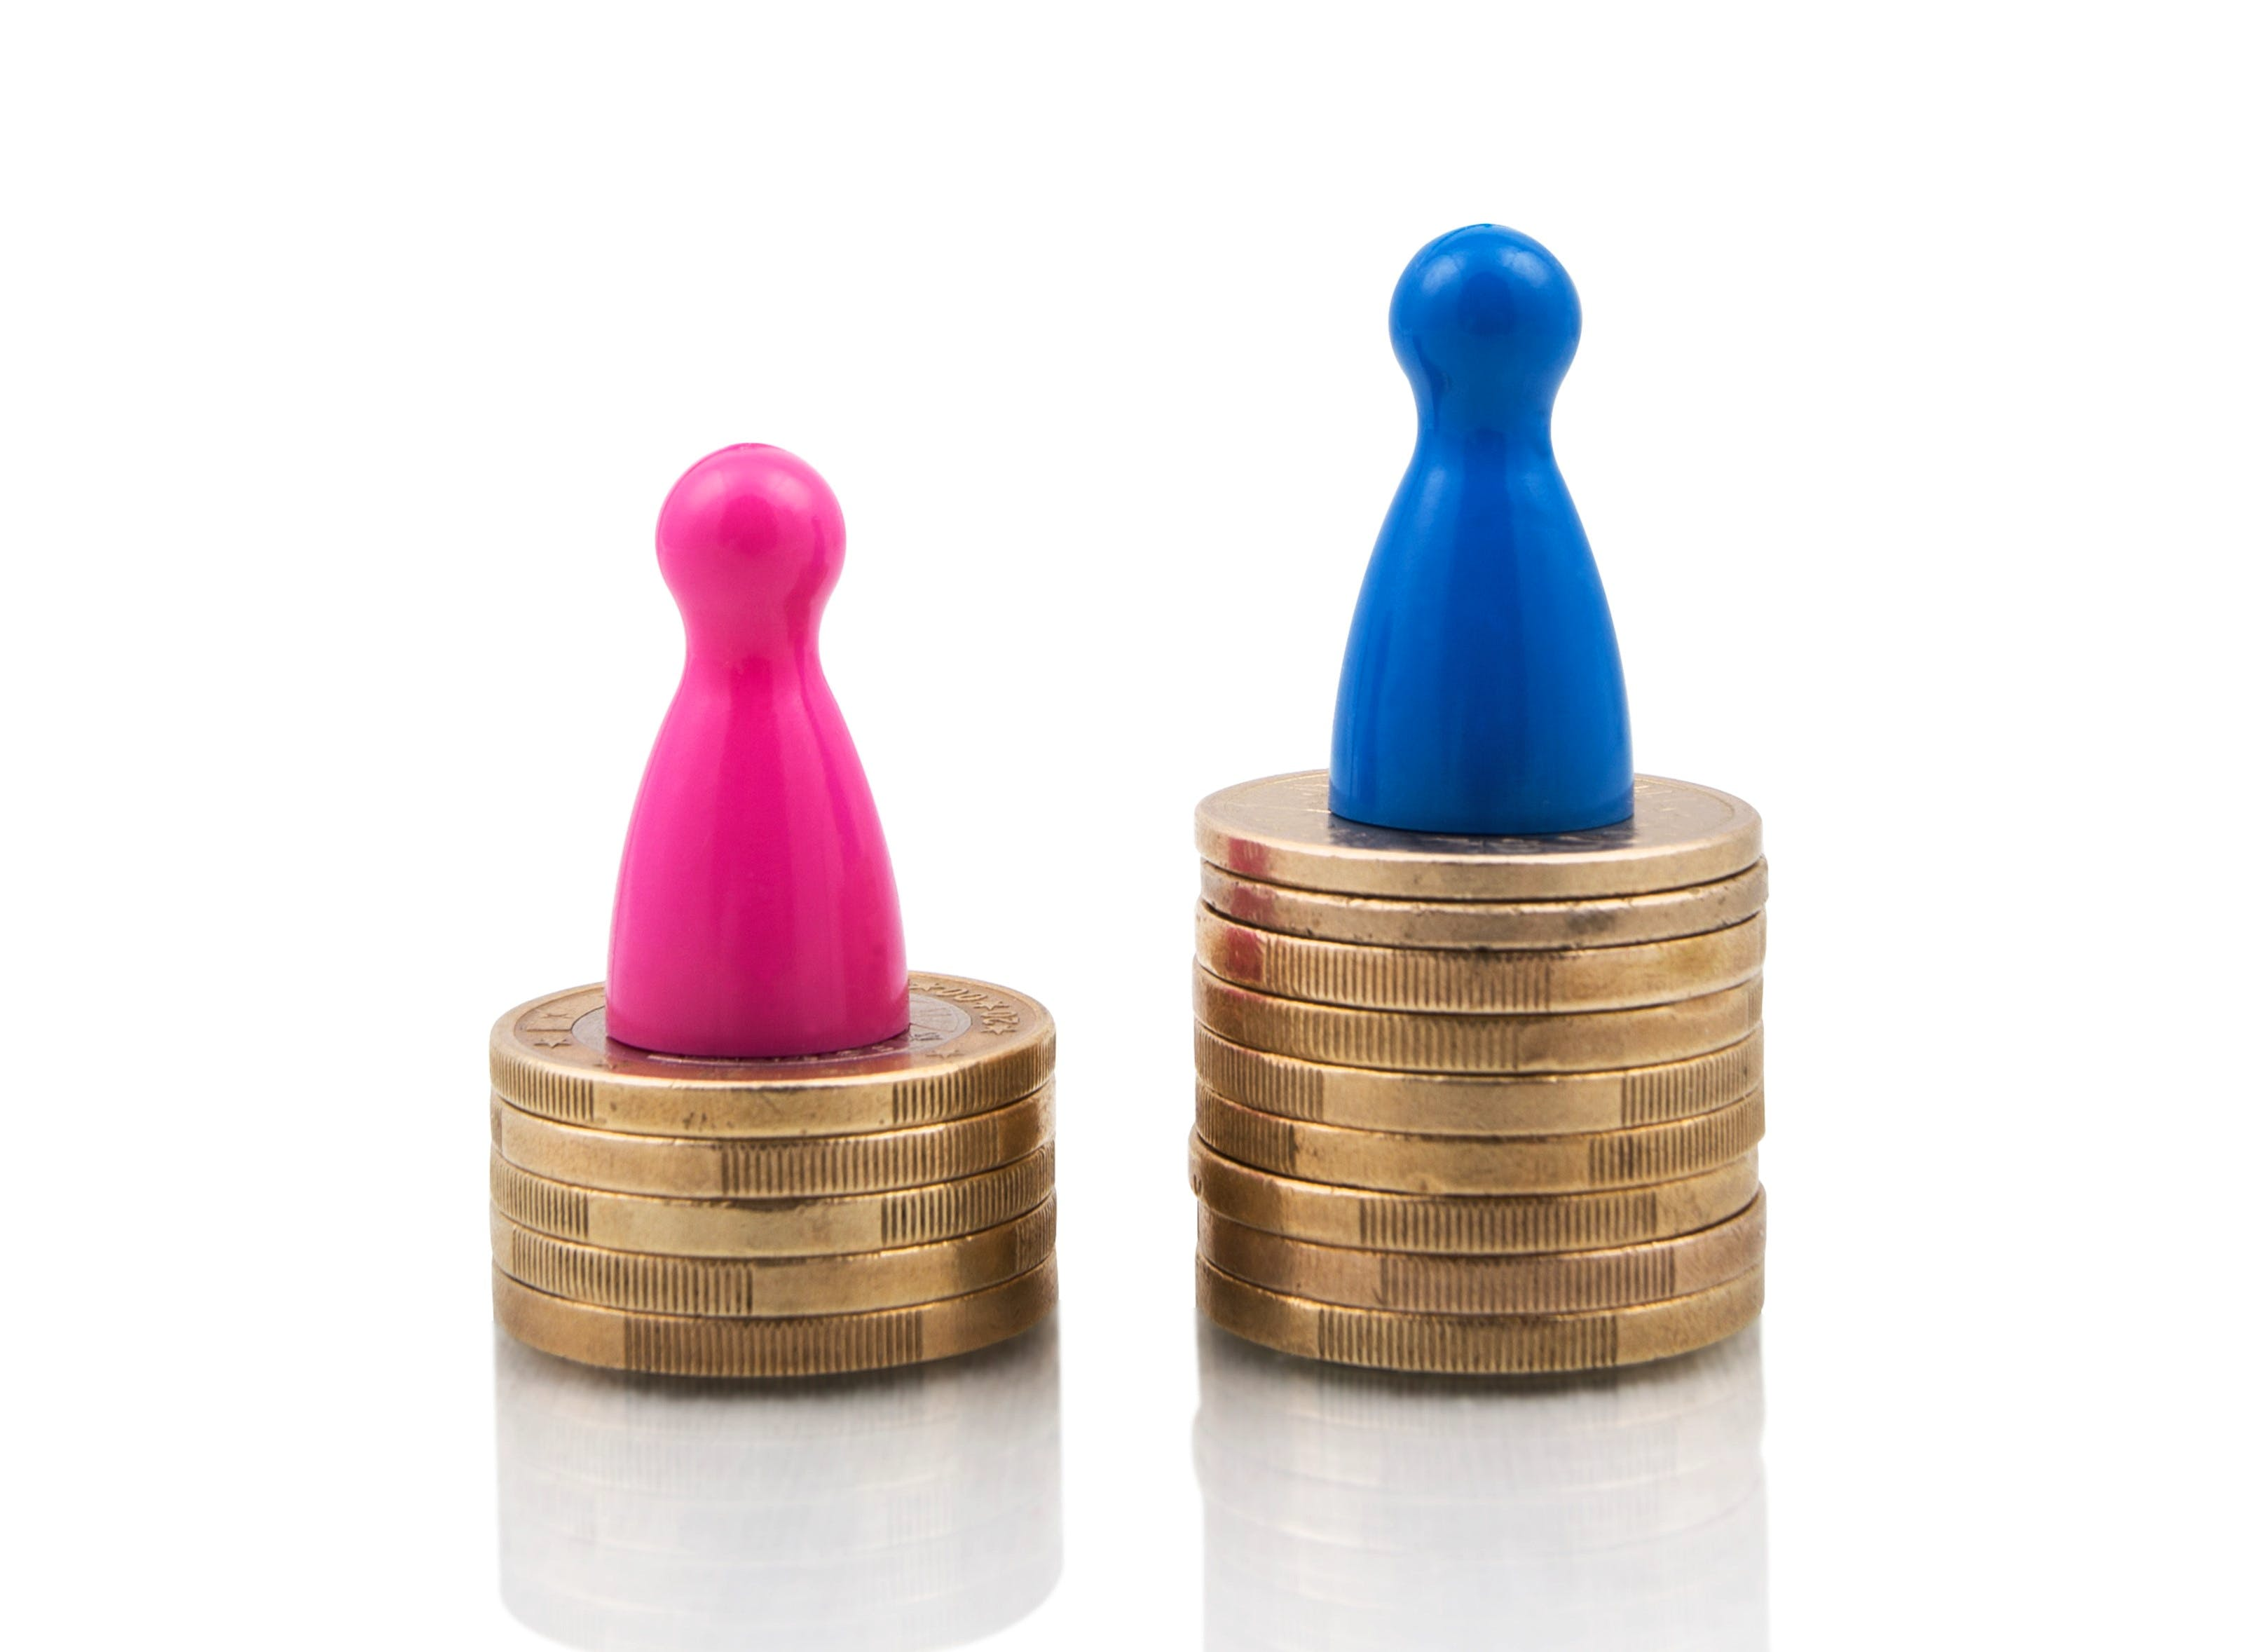 male, female, Gender pay gap